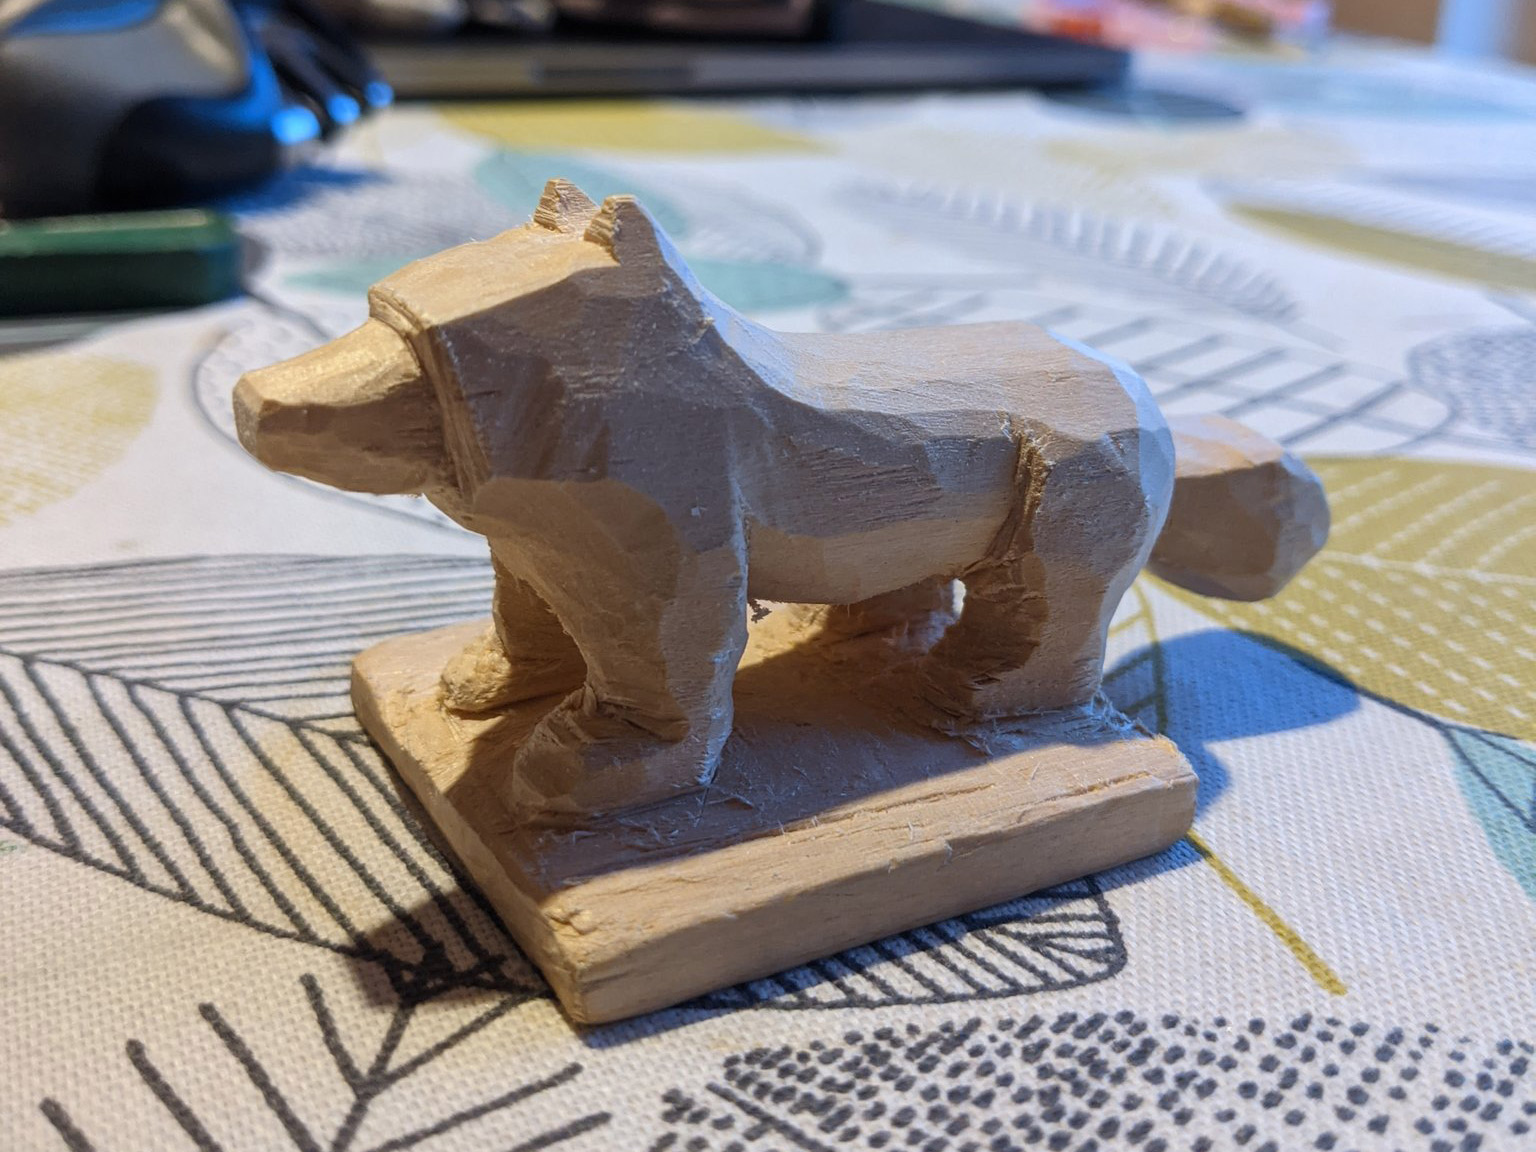 Side angle of the dog, mostly formed now, the snout, eats, legs, belly, back and tail are all clear, though proportions are a little off, it might be confused with a bear